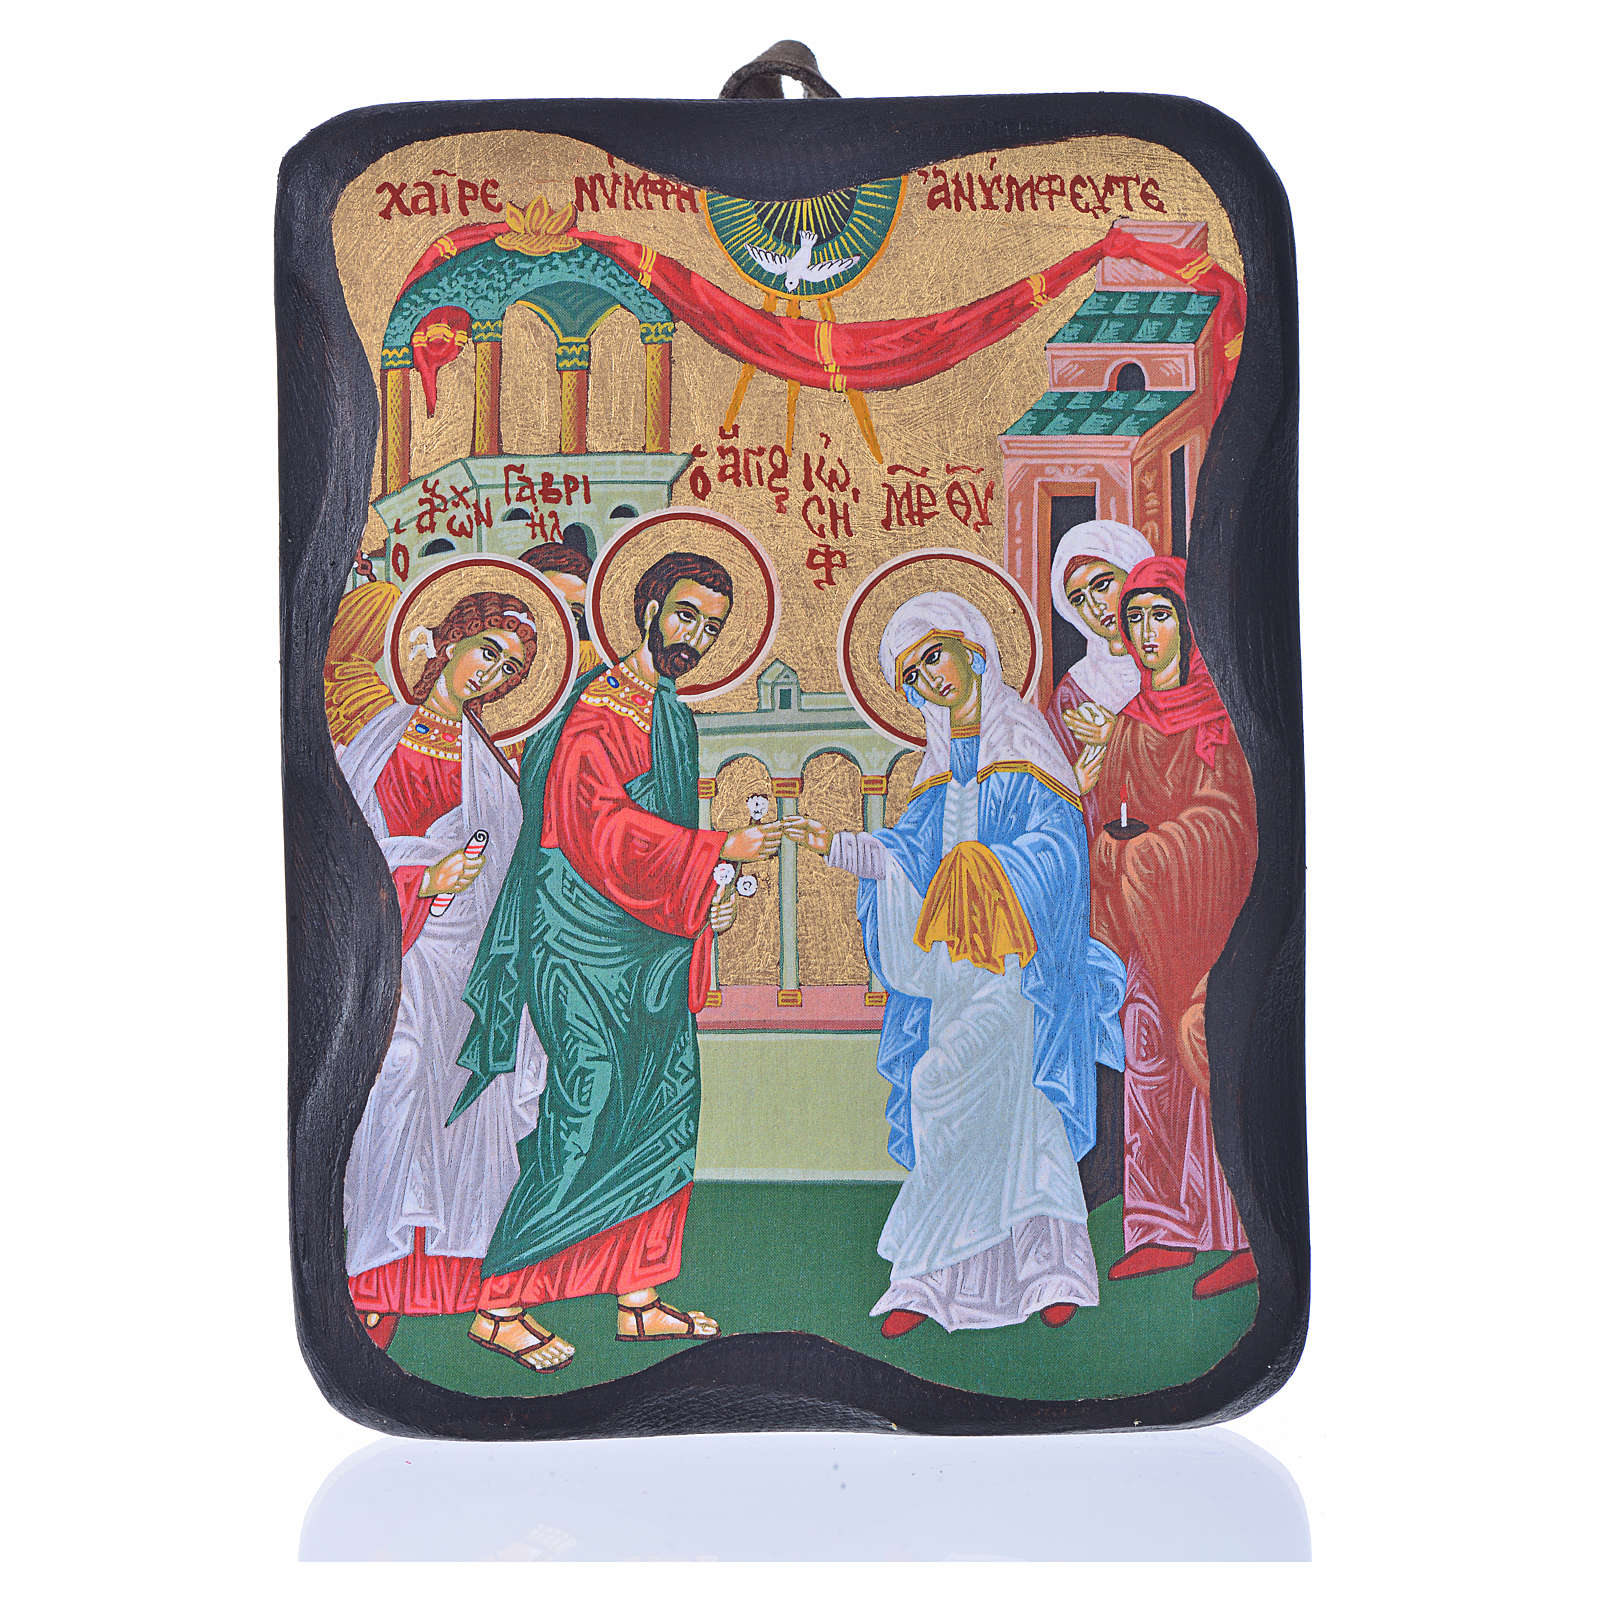 Joseph and Mary's wedding icon, 13x11cm, screenprinted in Greece 4